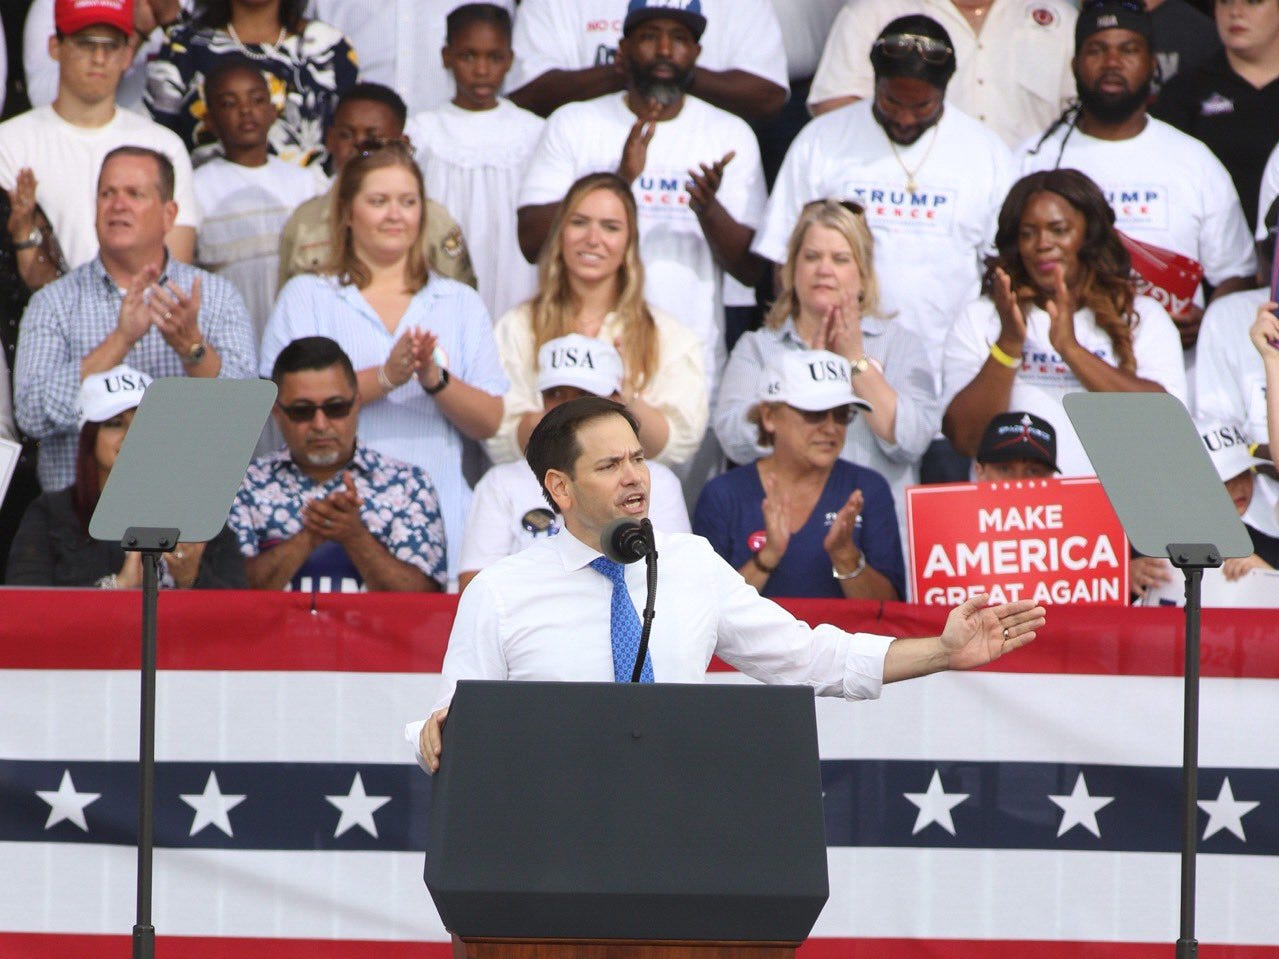 Sen. Marco Rubio, R-Fla., speaks to the crowd at the Donald Trump re-election campaign rally at Panama City Beach, Fla., on Wednesday, May 8, 2019.